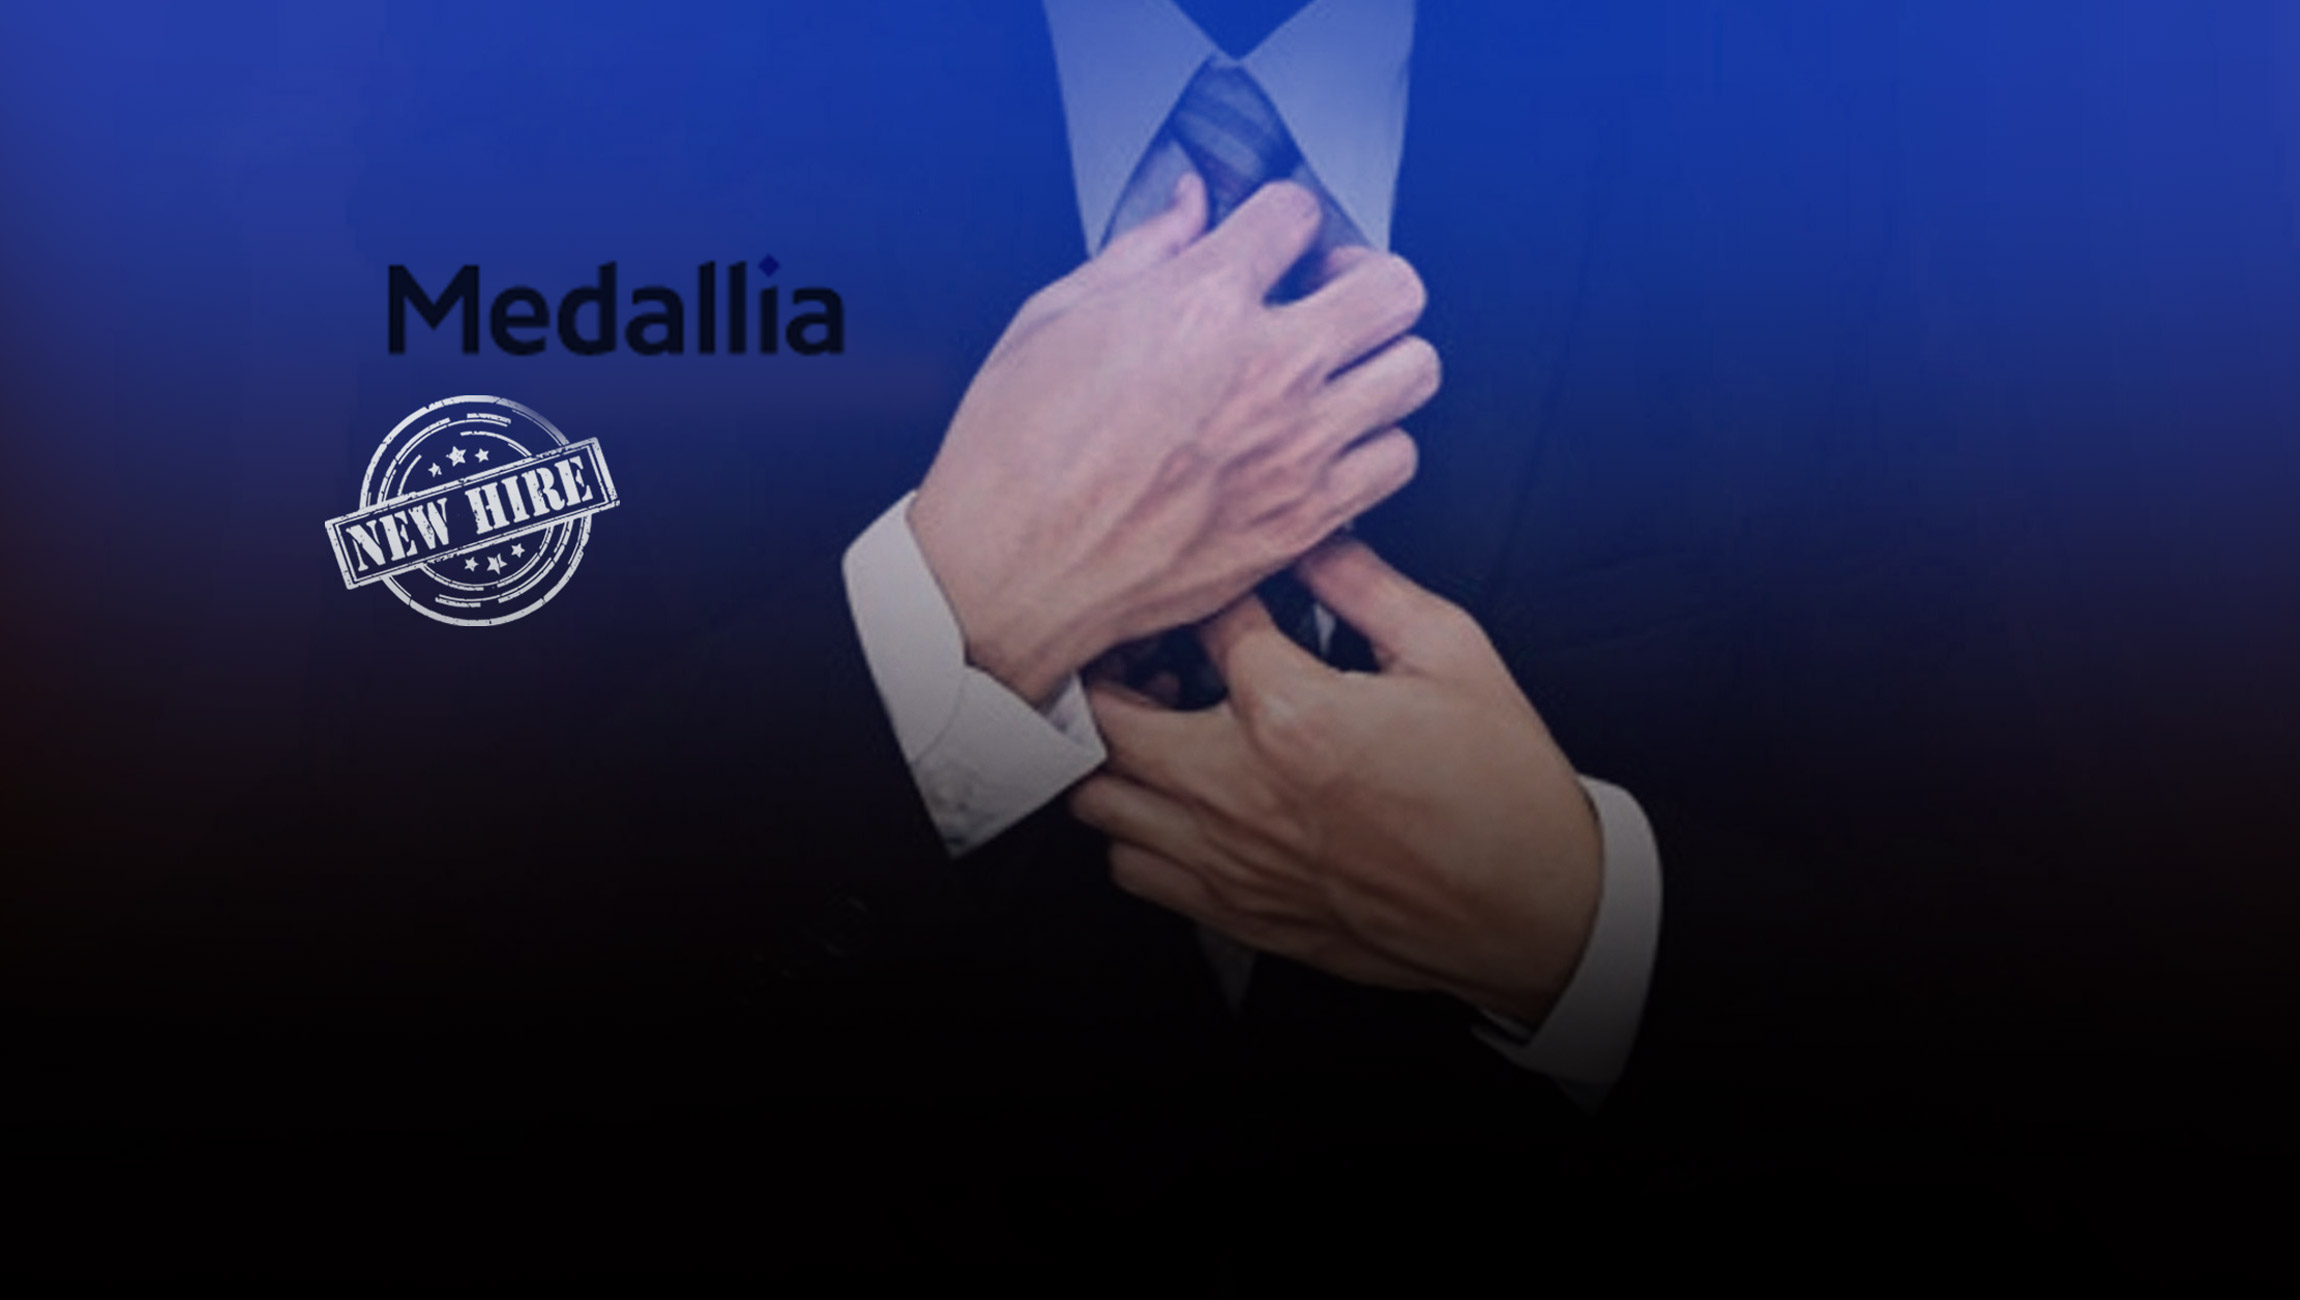 Medallia Appoints Elizabeth Carducci as Chief Revenue Officer Positioning Sales and Field Organizations for Fiscal Year 2022 Growth Goals